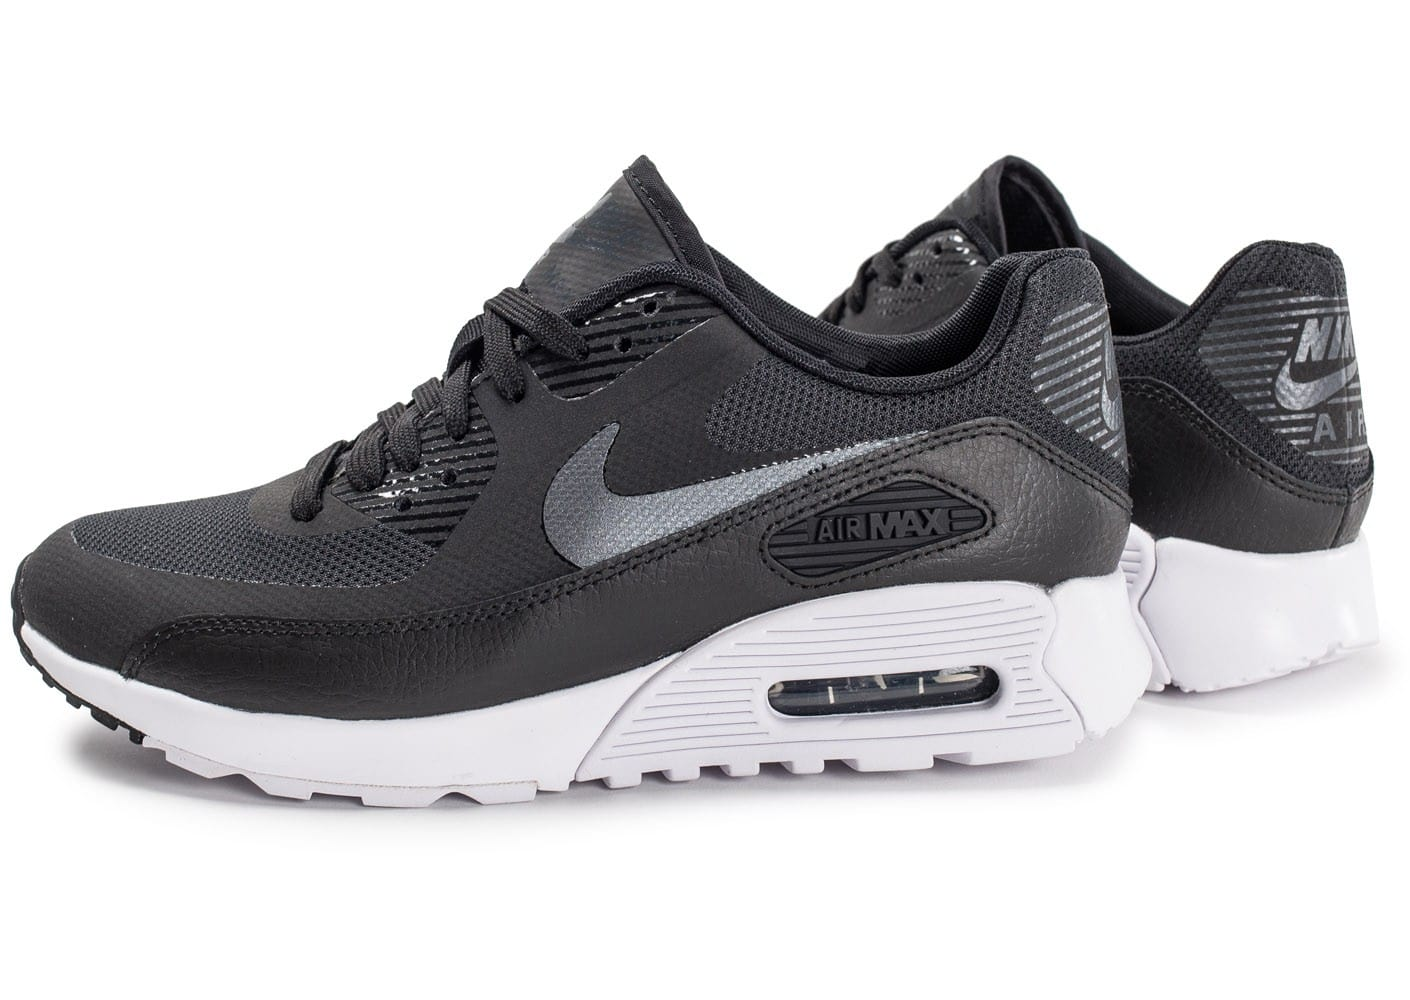 Nike Air Max 90 Ultra 2.0 noires Chaussures Baskets femme